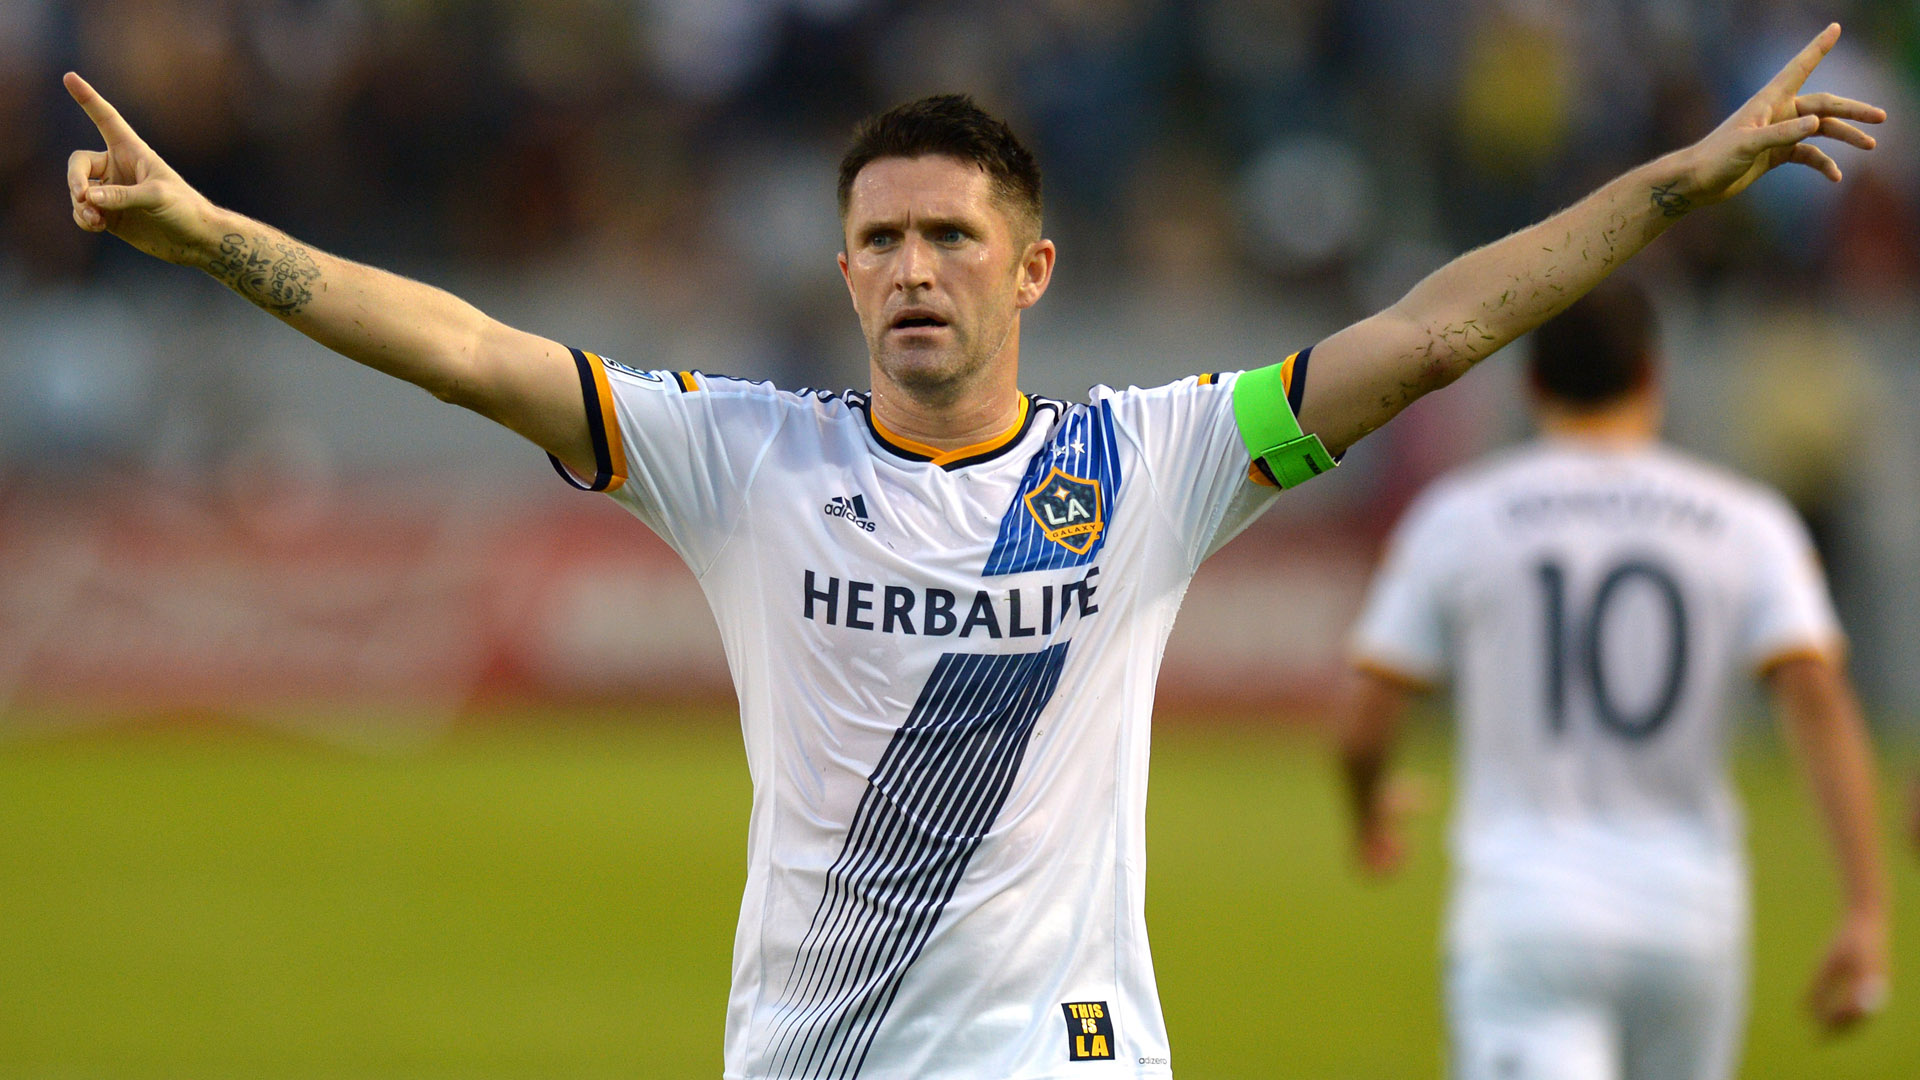 Odds to win 2015 MLS Cup posted in Vegas - No Donovan, no problem for Galaxy